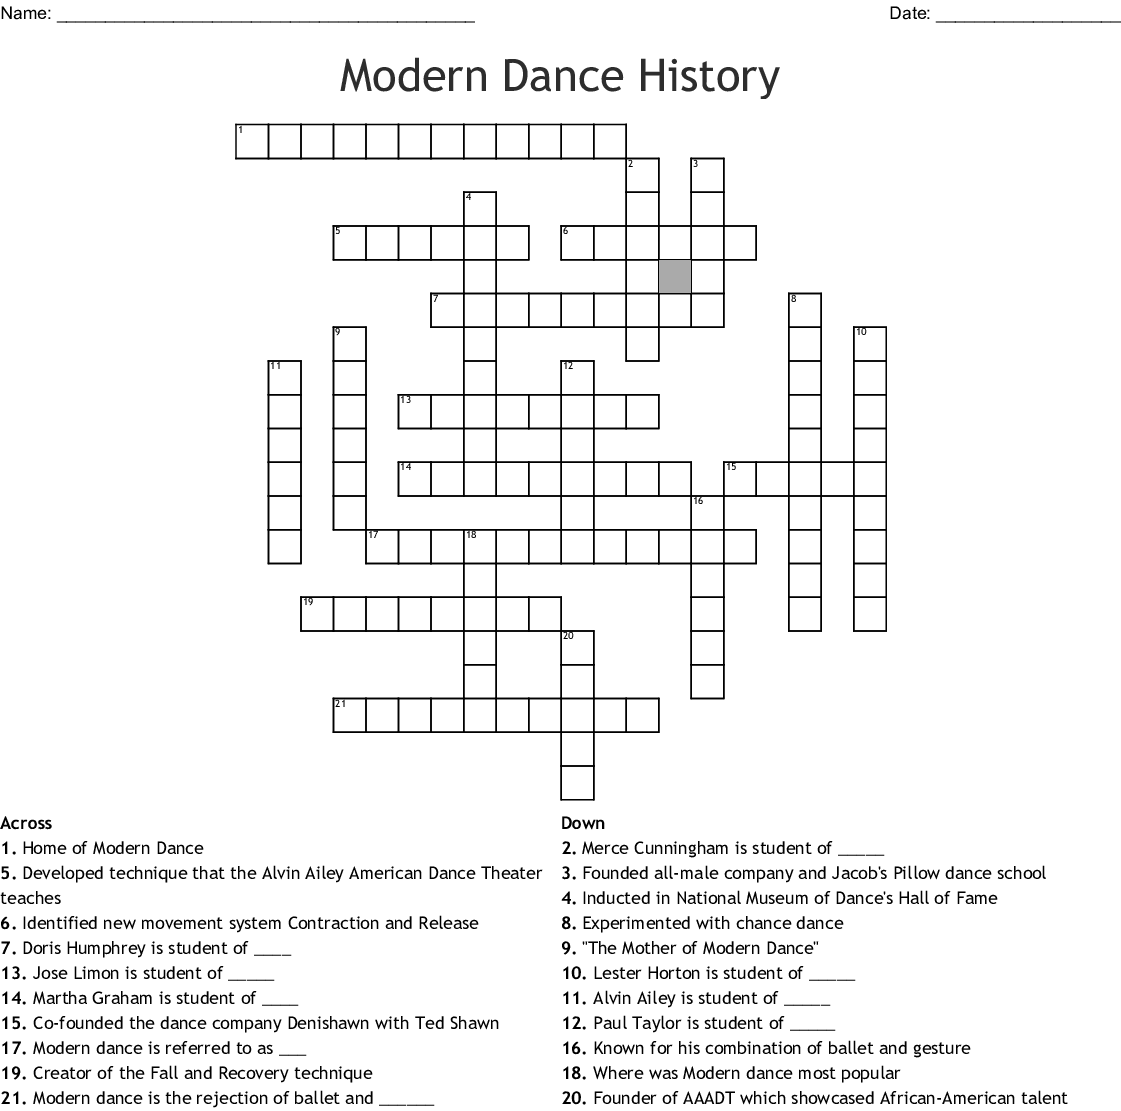 photo regarding Black History Crossword Puzzle Printable named Ground breaking Dance Record Crossword - WordMint